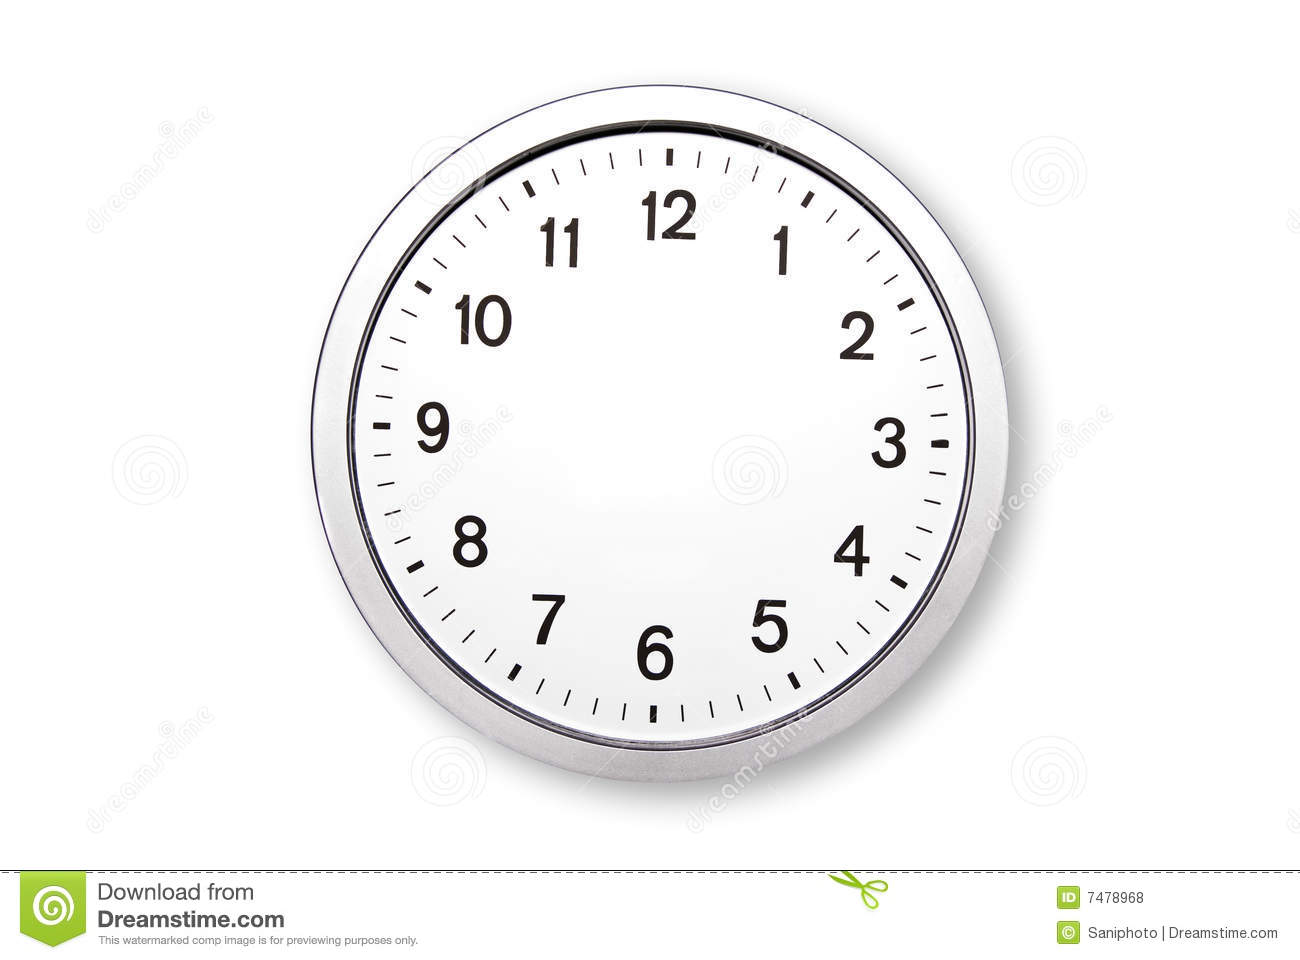 Clock without hands stock photo. Image of blank, copyspace